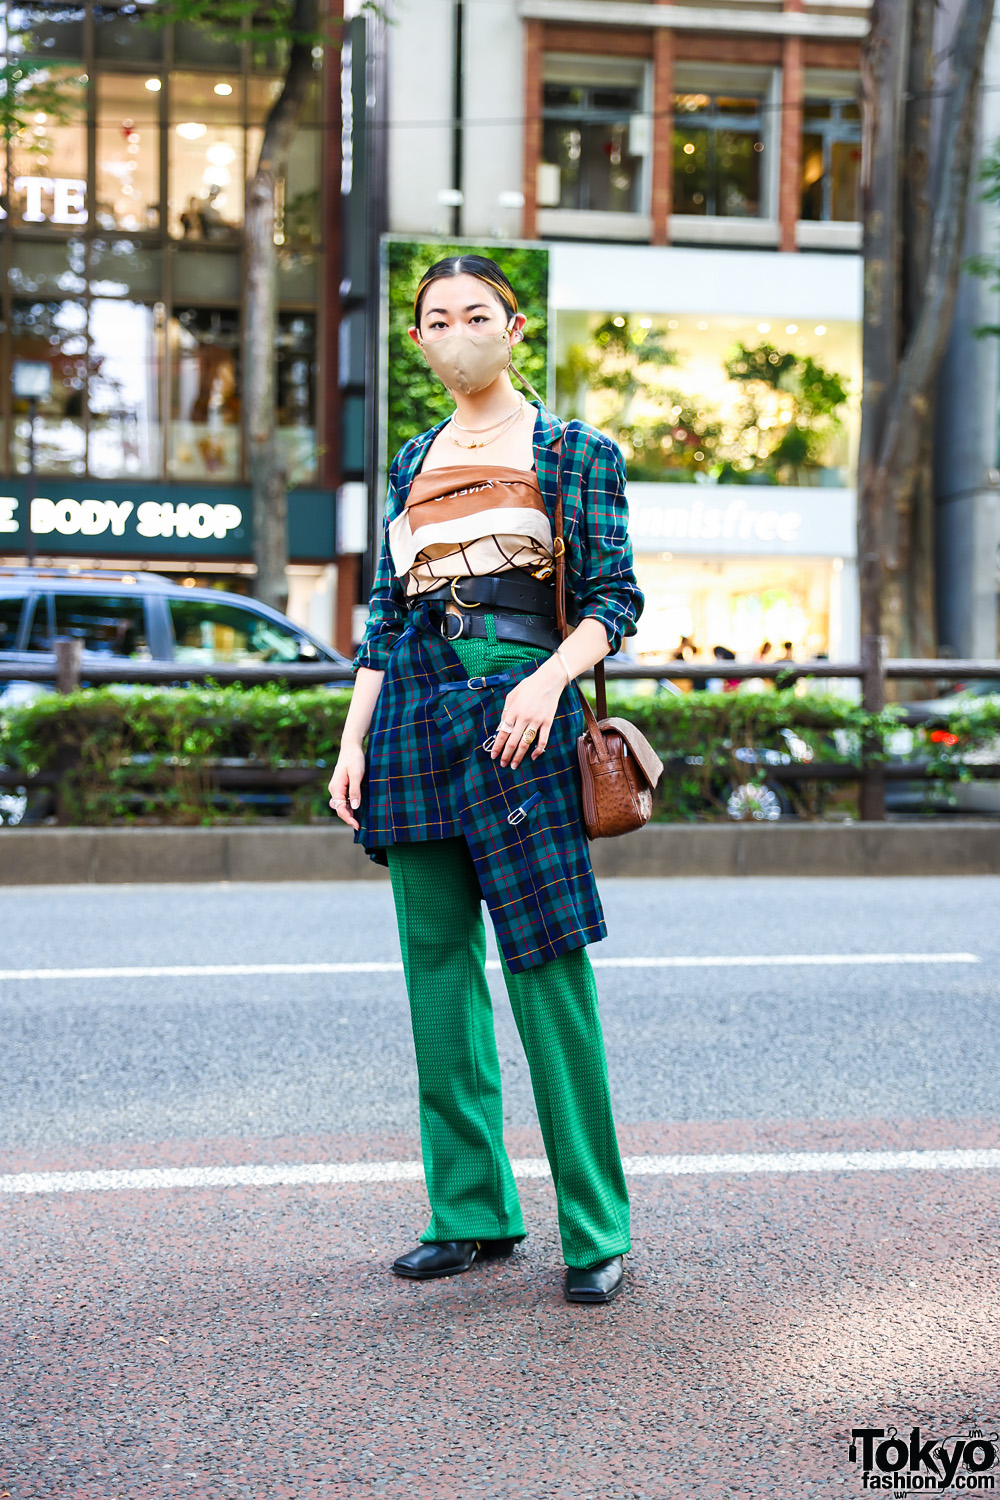 Tokyo Layered Street Style w/ Chanel Scarf Top, Plaid Skirt Suit, Patterned Pants, Handmade Accessories, Textured Leather Bag & Zara Square Boots